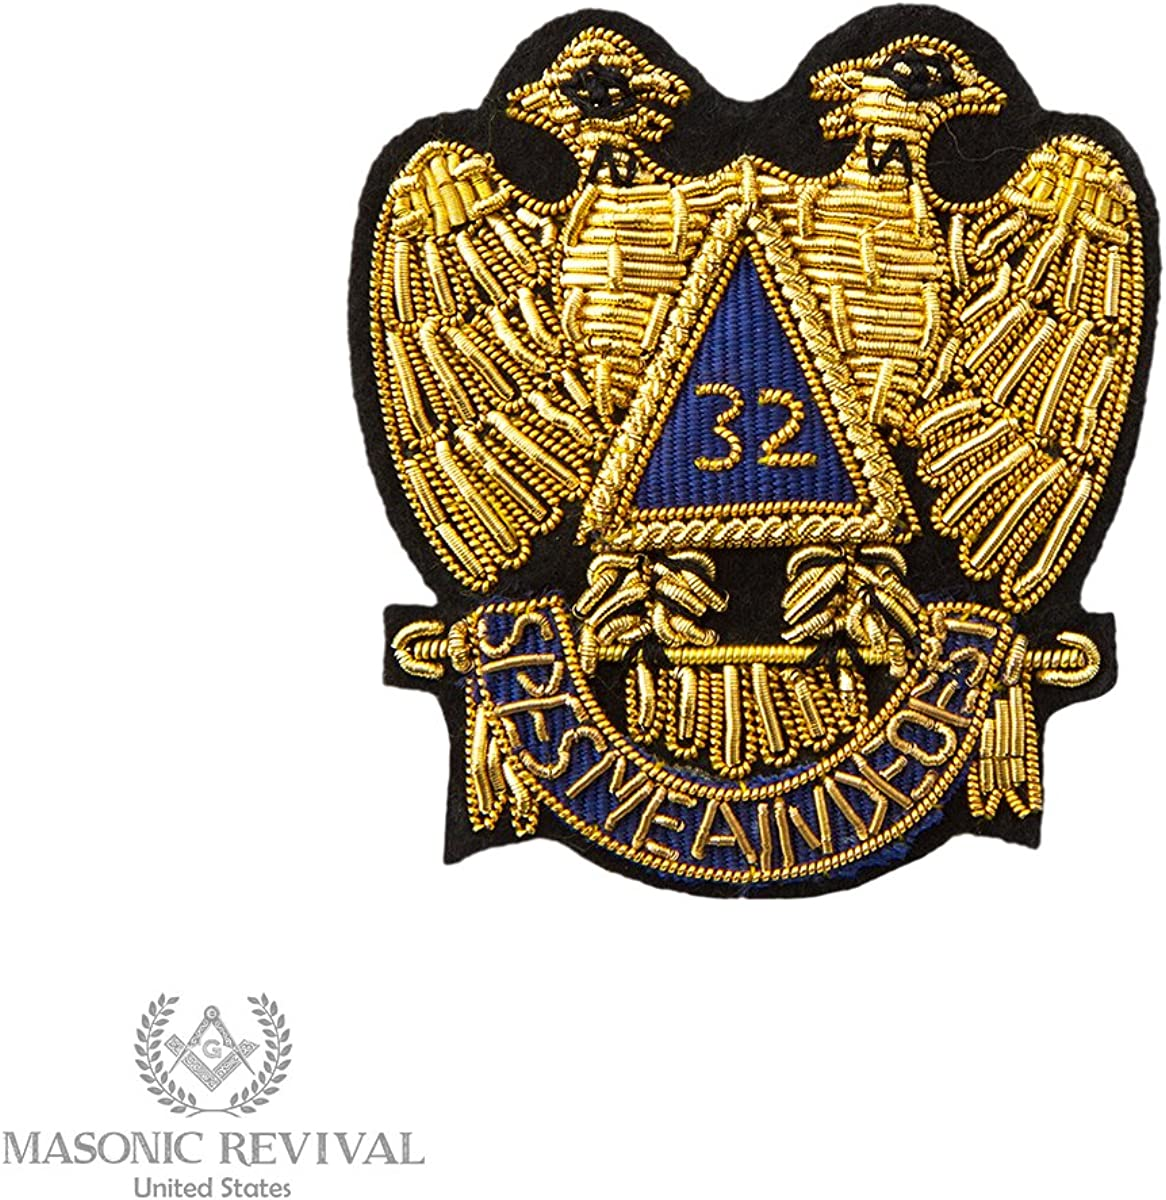 32 Degree Scottish Rite Embroidery Patch by Masonic Revival